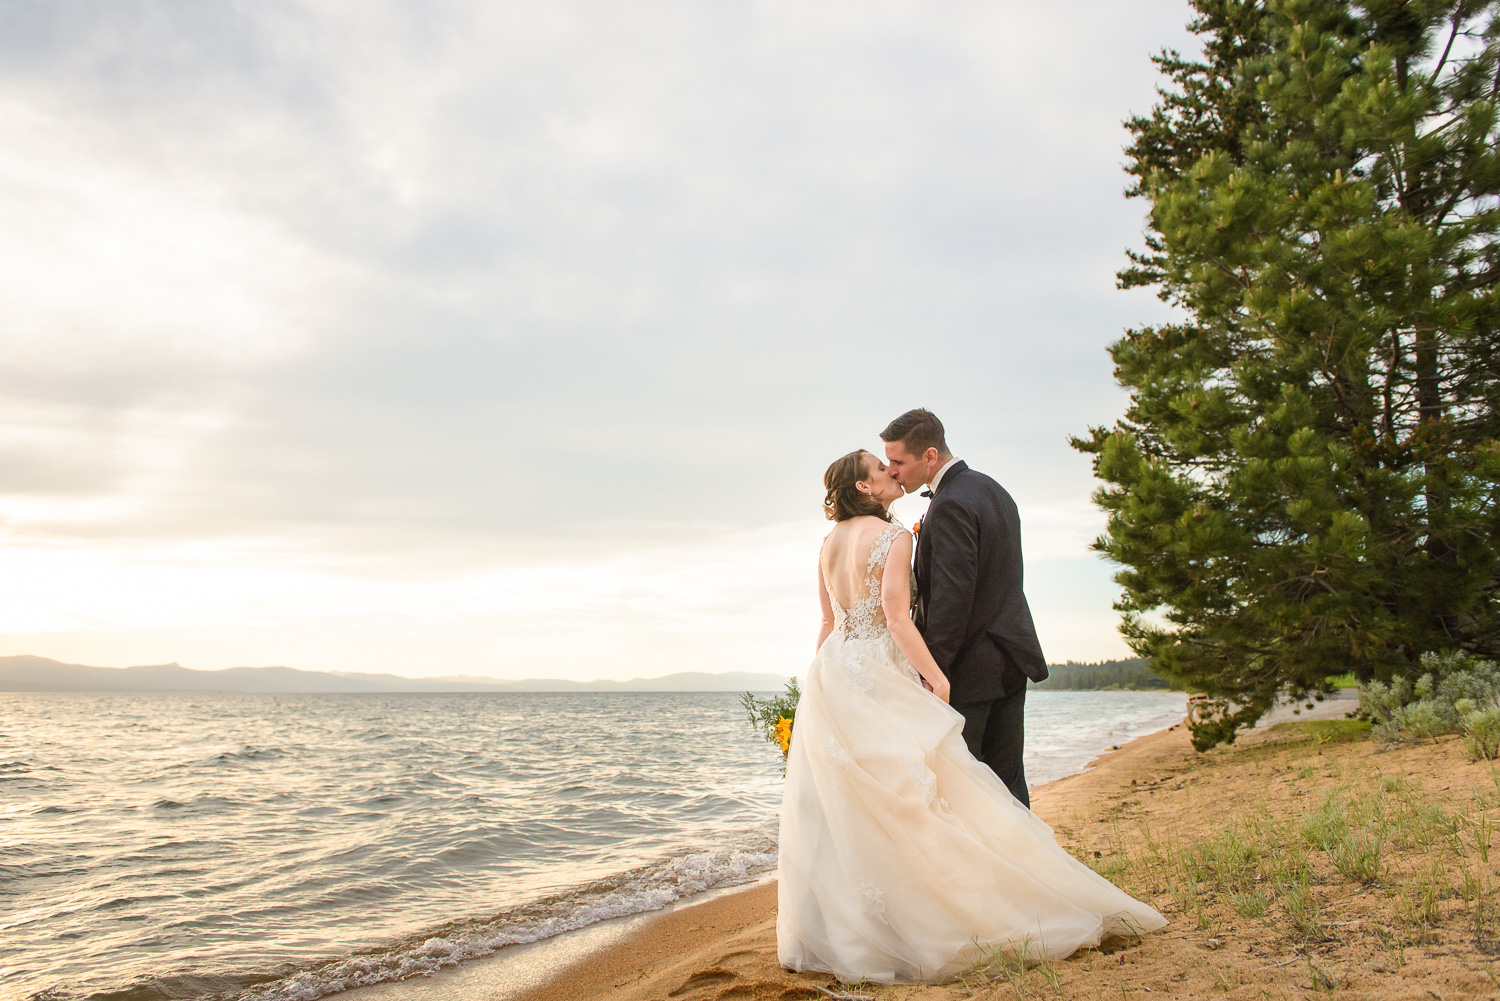 South Lake Tahoe wedding photographer